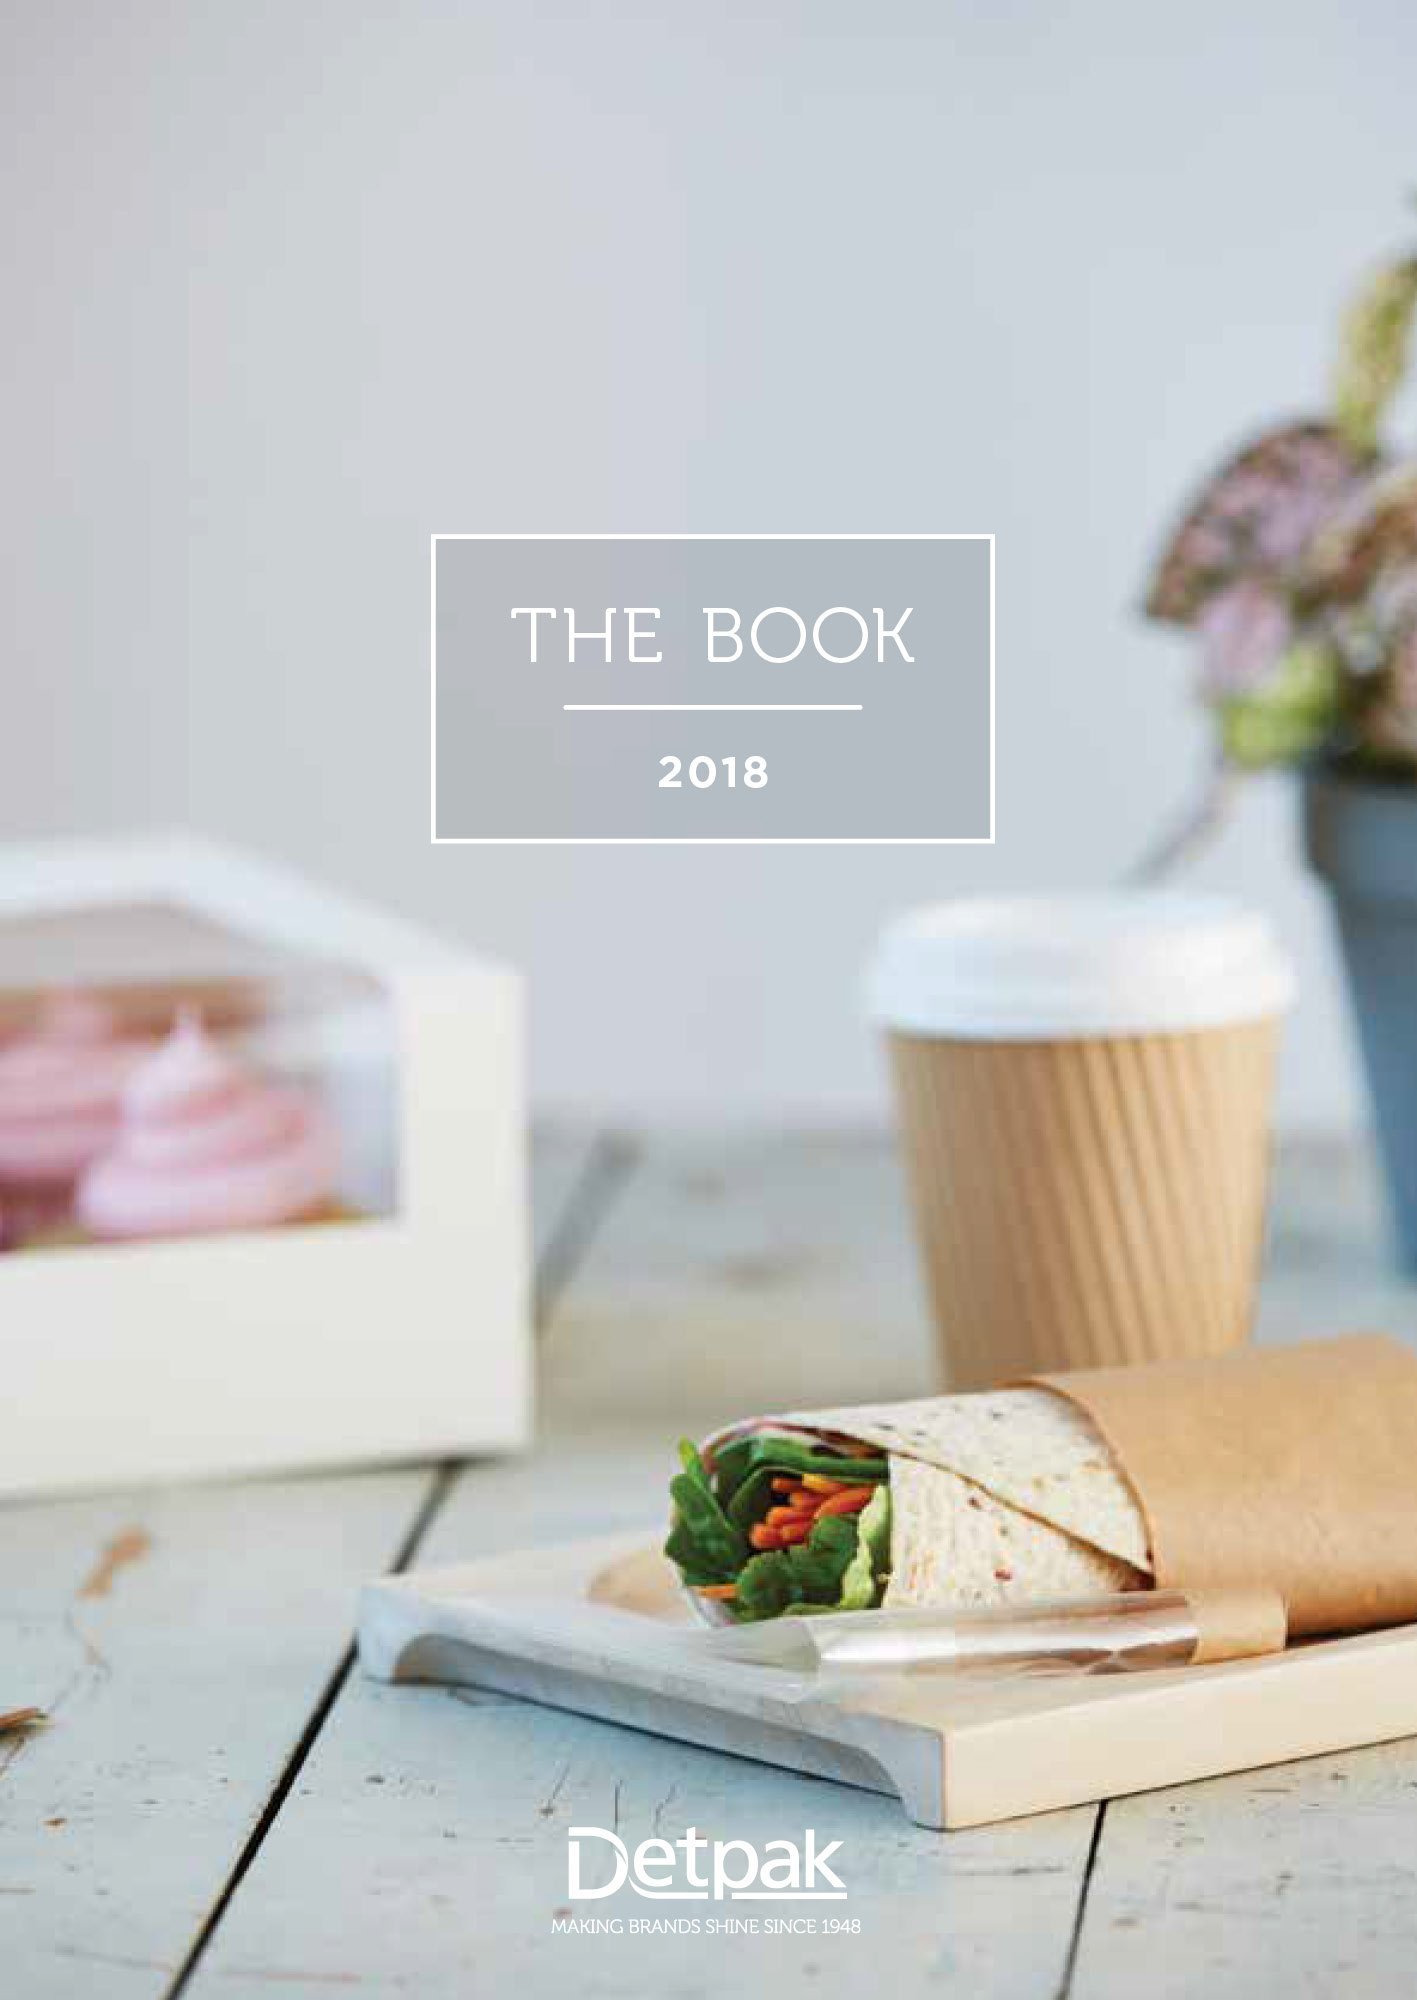 The Book Australia and New Zealand - 2018